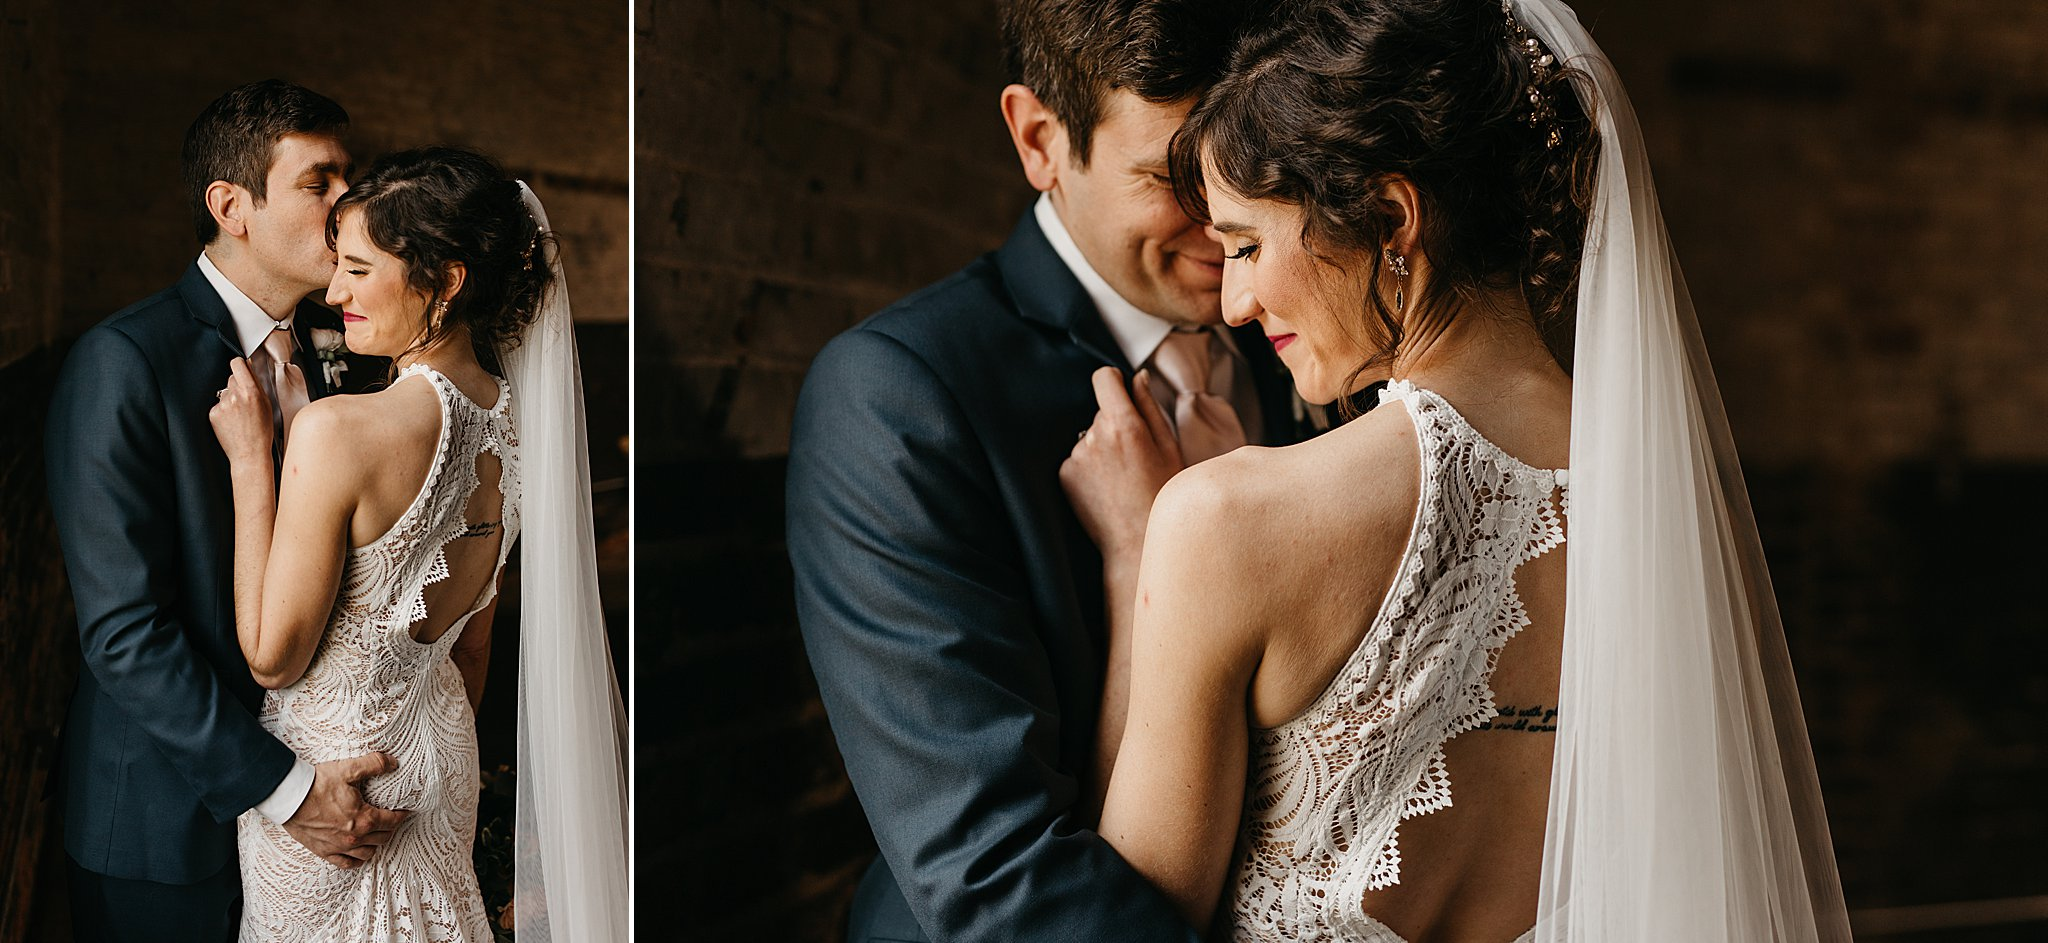 Wilderlove Co_Wedding Photographer_Industrial Wedding_Jewish Wedding_Dallas Texas Wedding_Brake & Clutch Warehouse_North Texas Photographer_0026.jpg